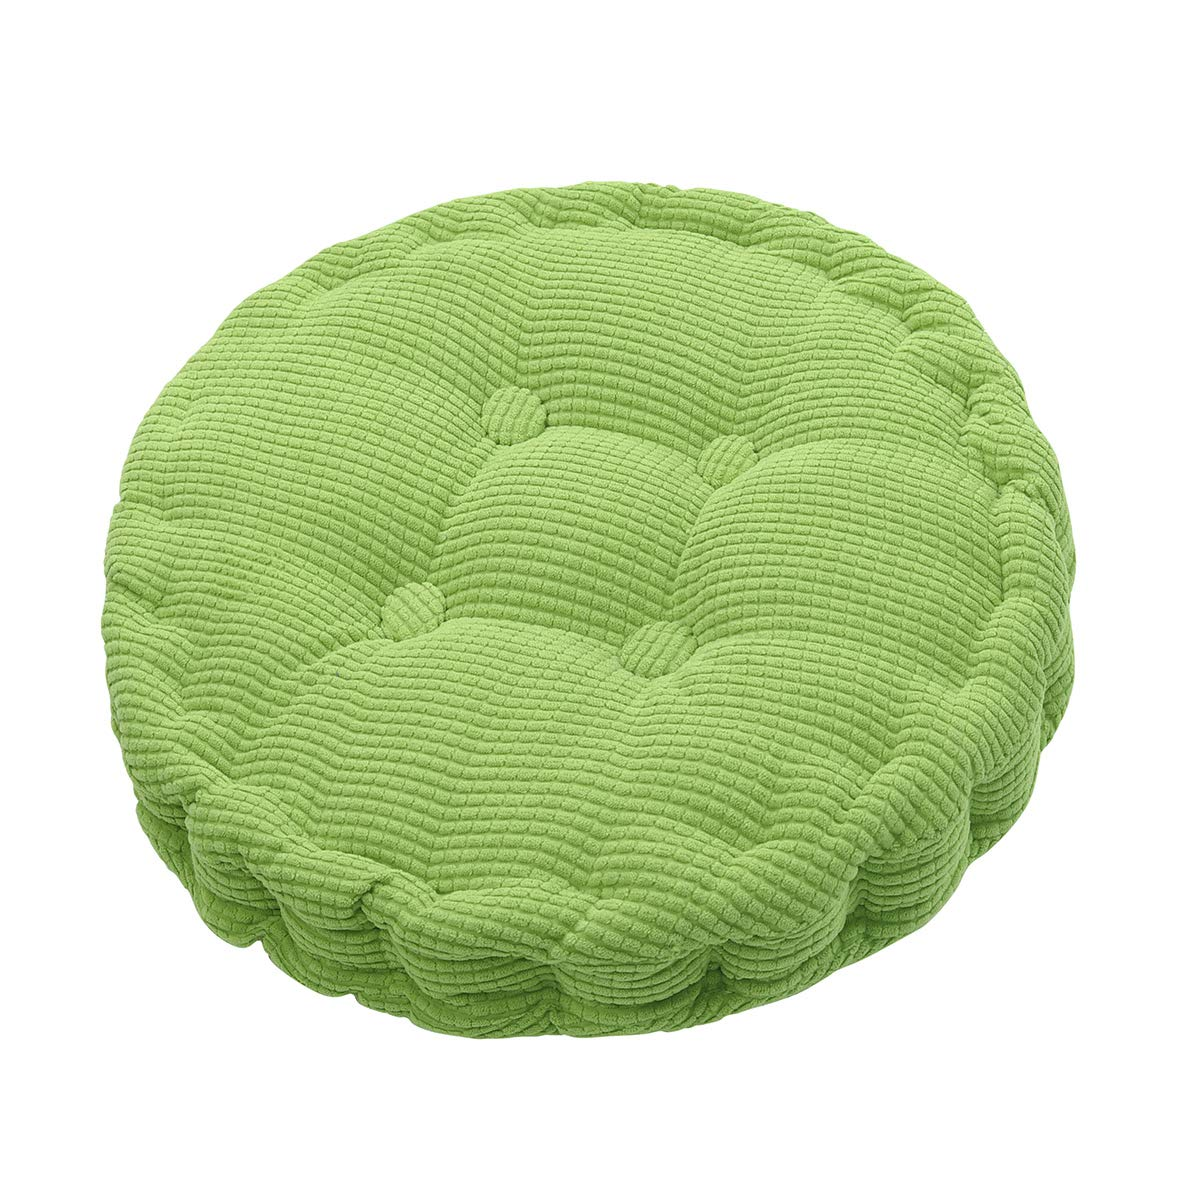 HomeMiYN Outdoor Round Seat Cushions Solid Color Indoor Chair Pads EPE Cotton Filled Boosted for Patio Office Kitchen (17.72 inches in Diameter)